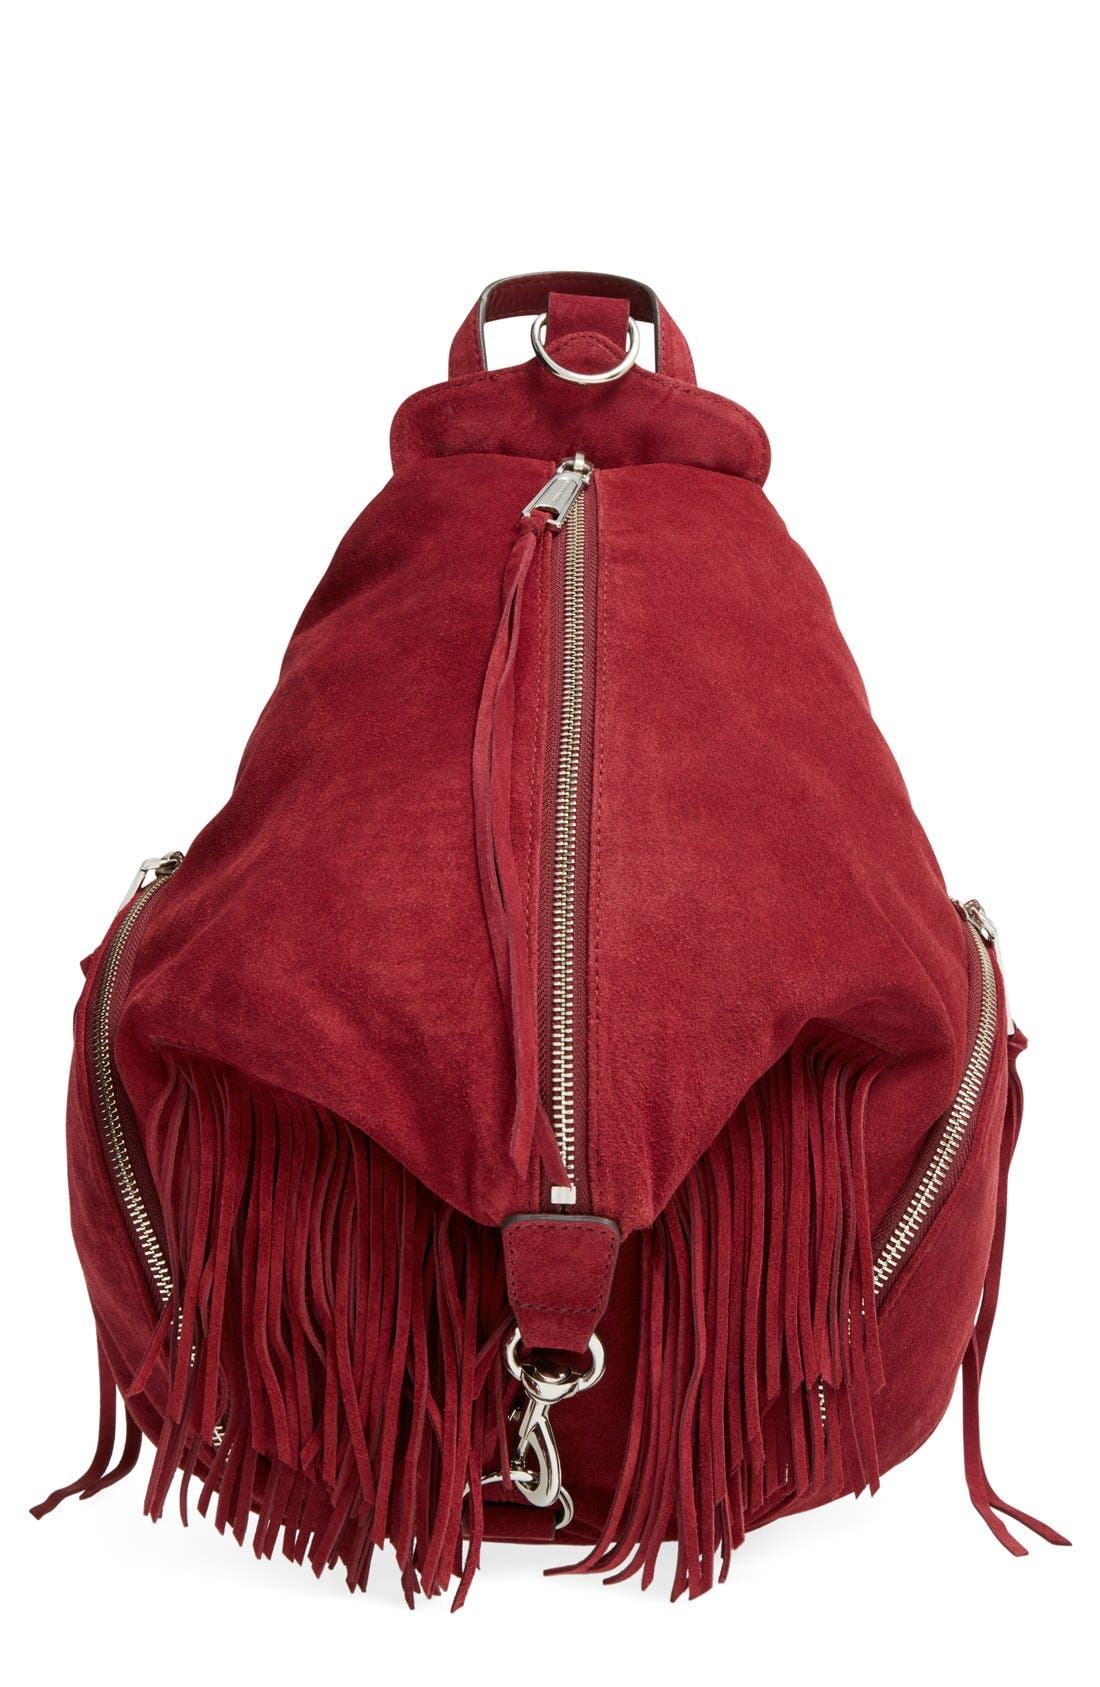 Alternate Image 1 Selected - Rebecca Minkoff 'Julian' Leather Backpack